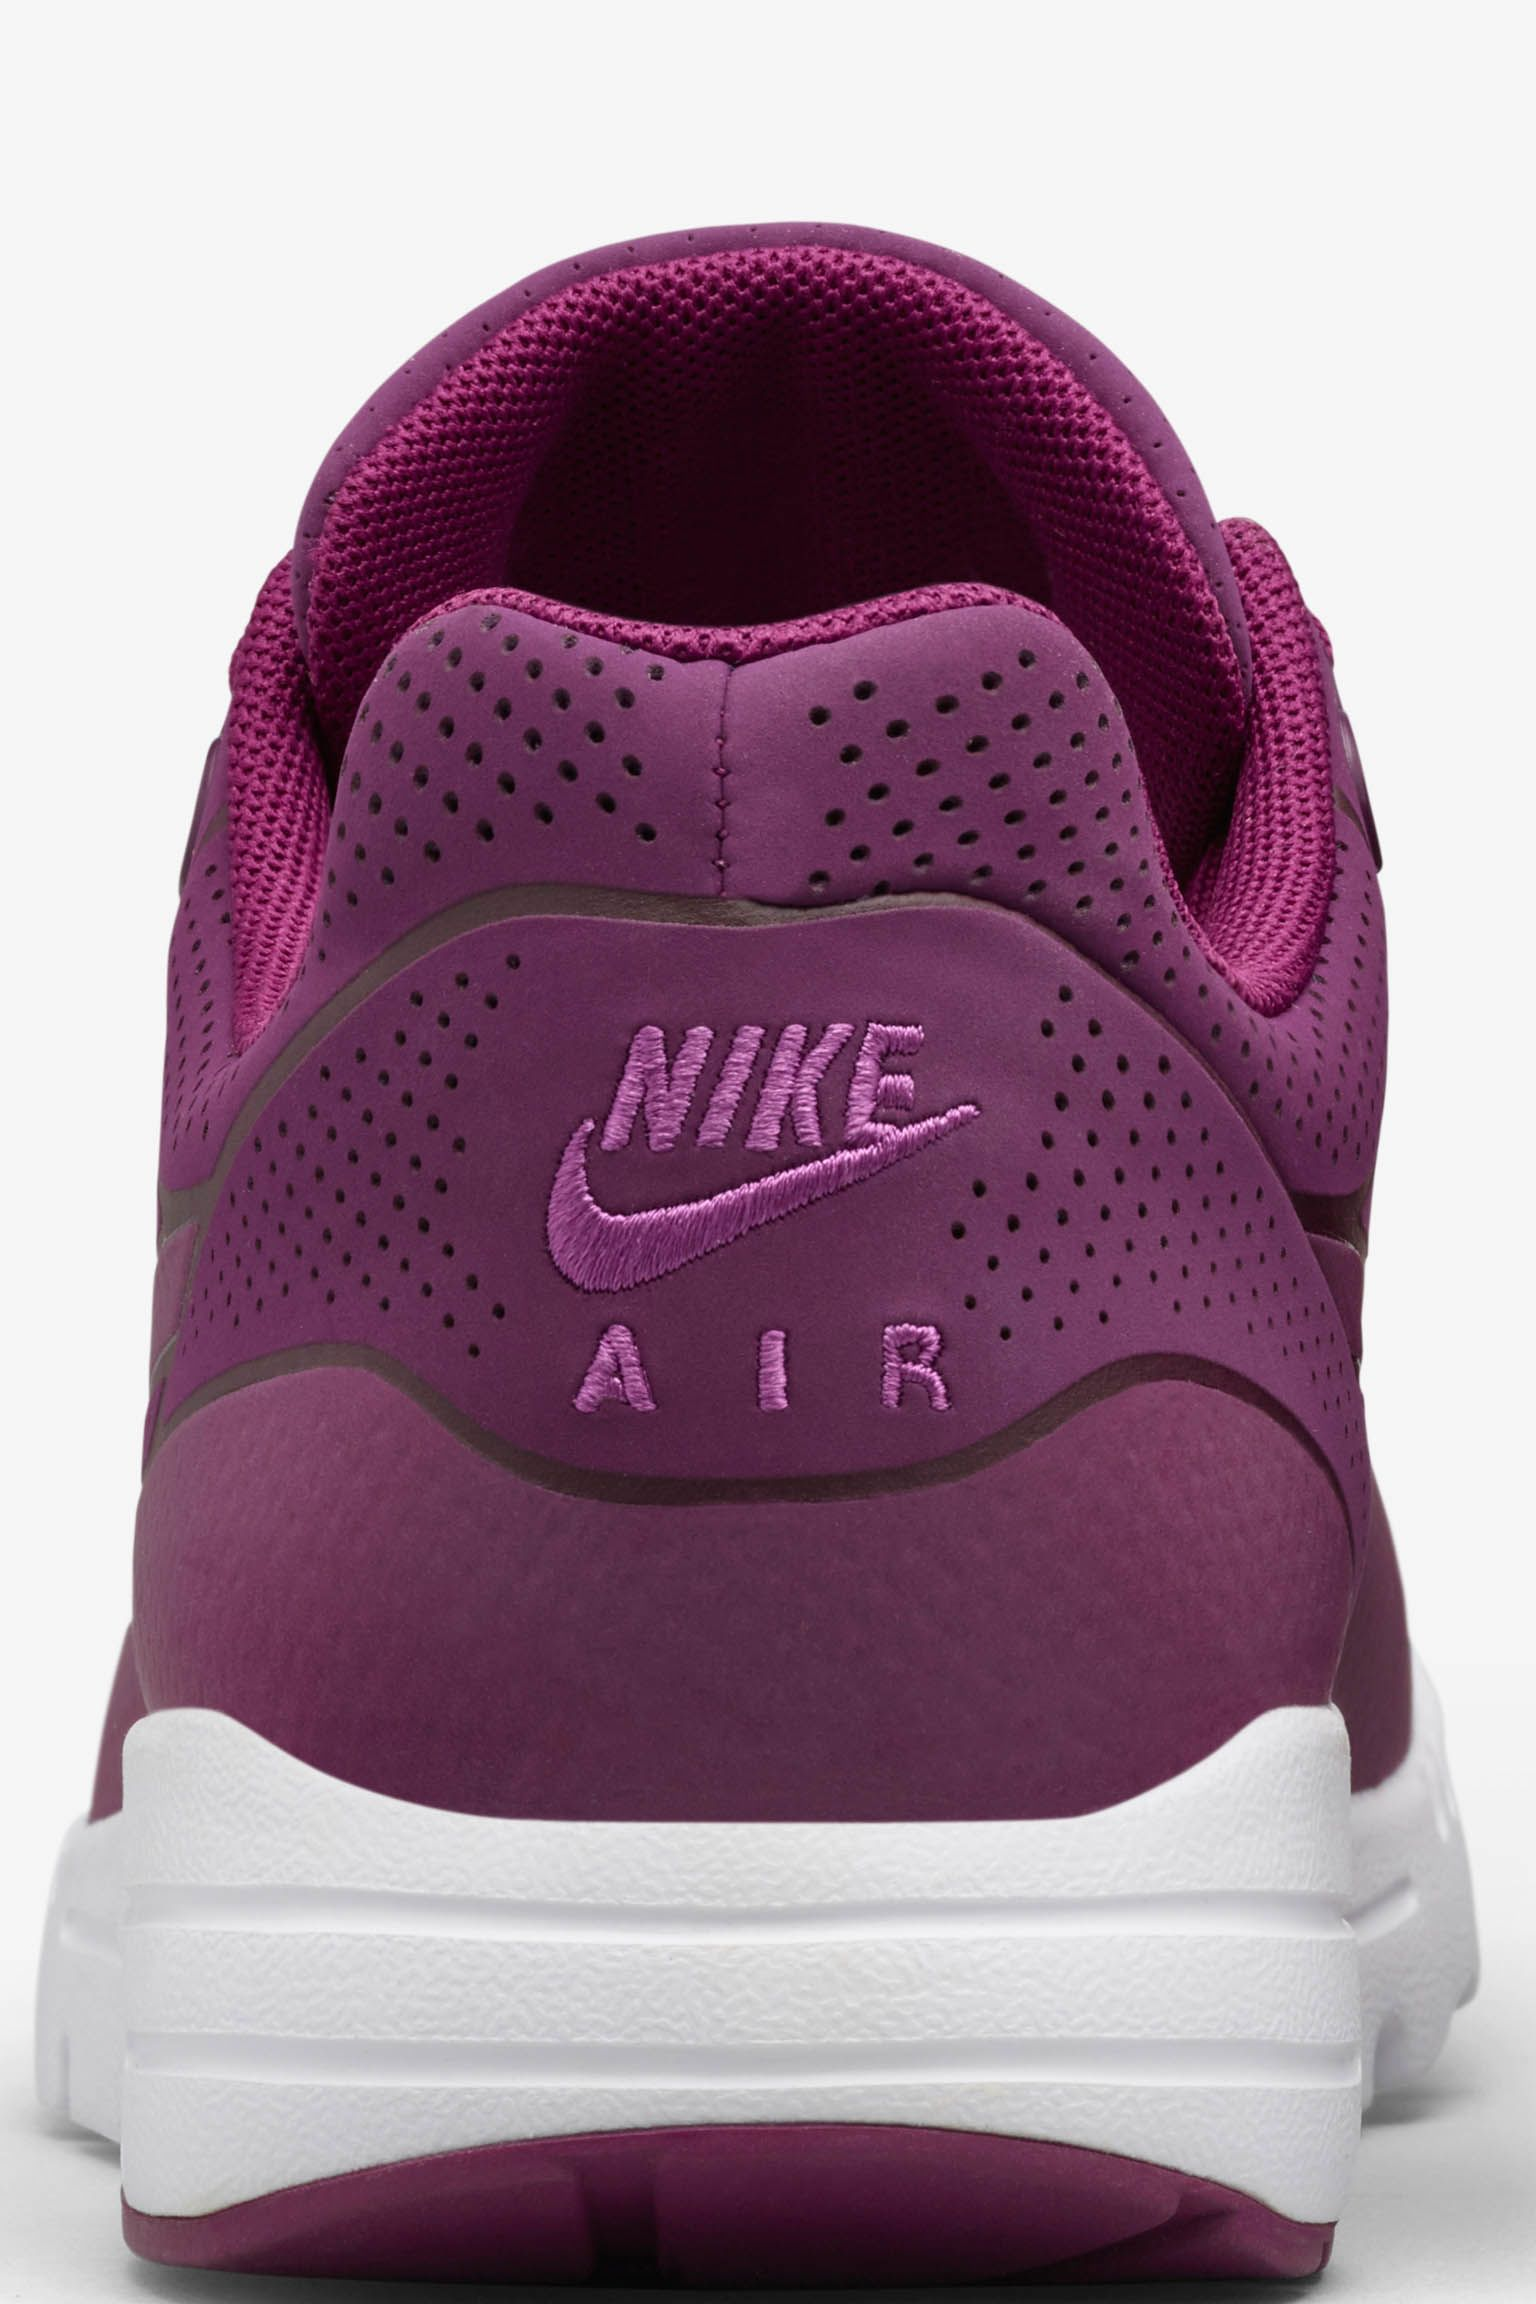 Women's Nike Air Max 1 Ultra Moire 'Mulberry'